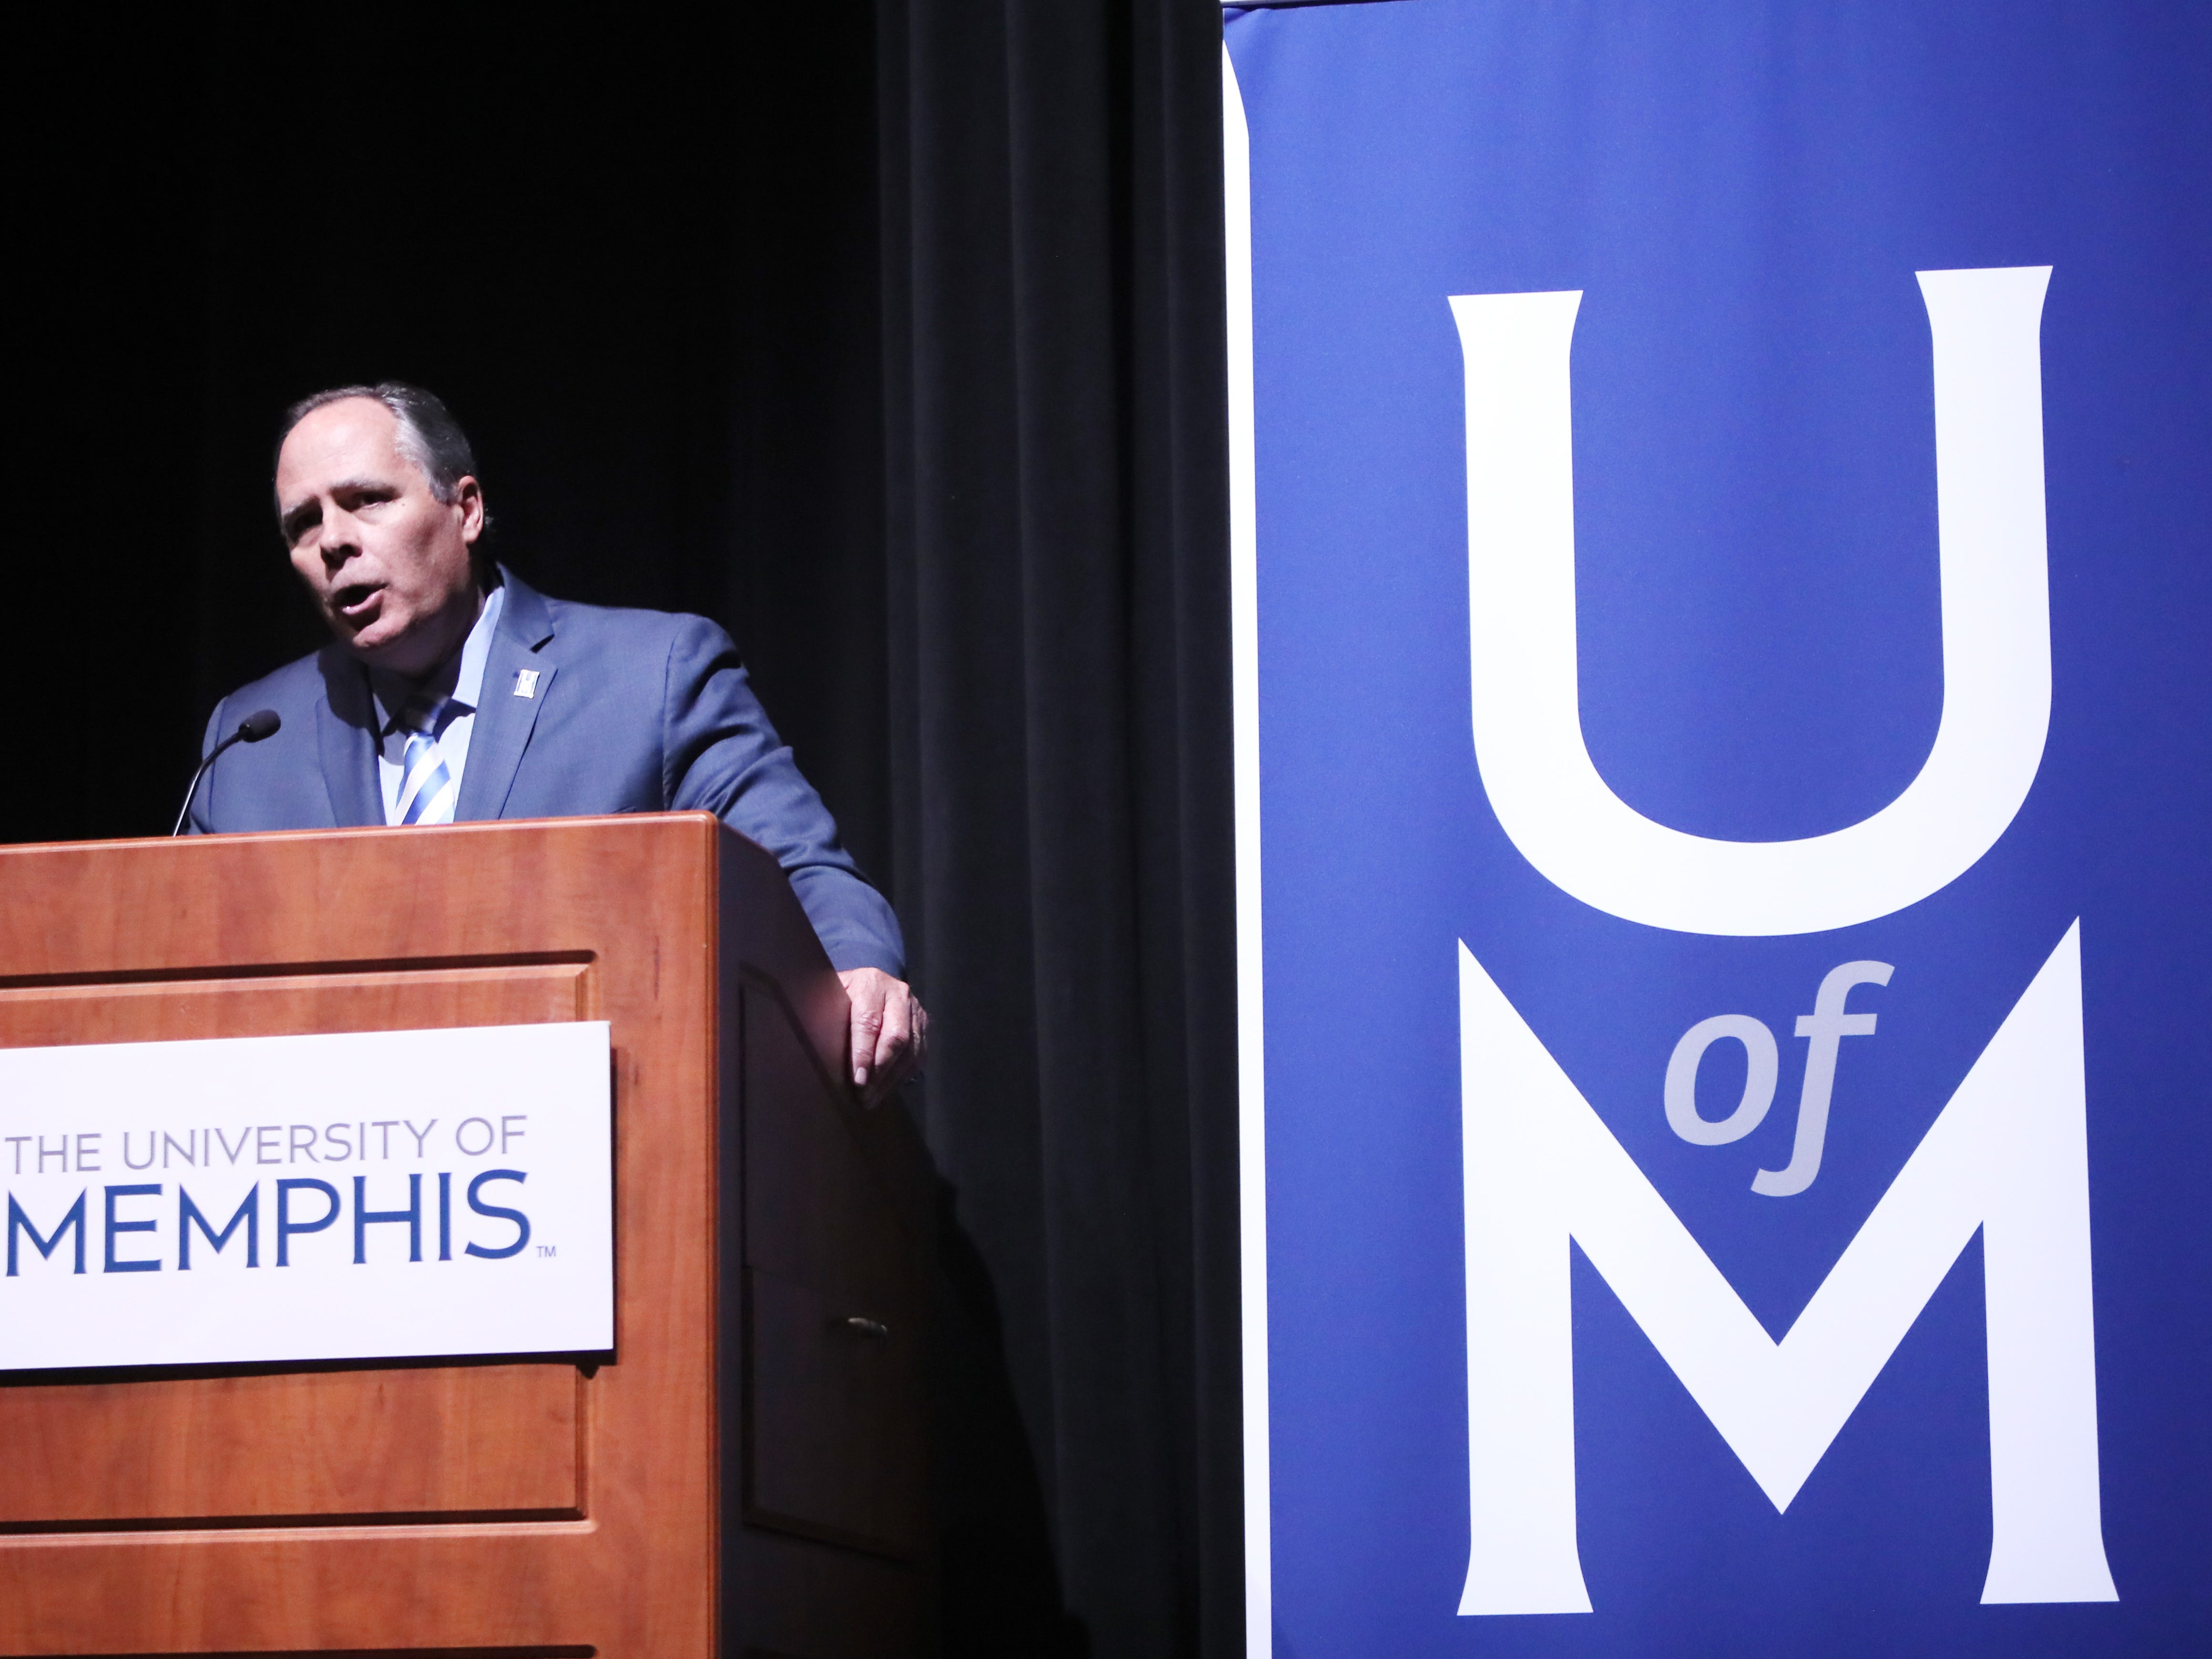 University of Memphis President M. David Rudd speaks before the start of the debate between Tennessee's gubernatorial candidates Democrat Karl Dean and Republican Bill Lee at the University of Memphis' Michael D. Rose Theater in Memphis, Tenn., on Tuesday, Oct. 2, 2018.